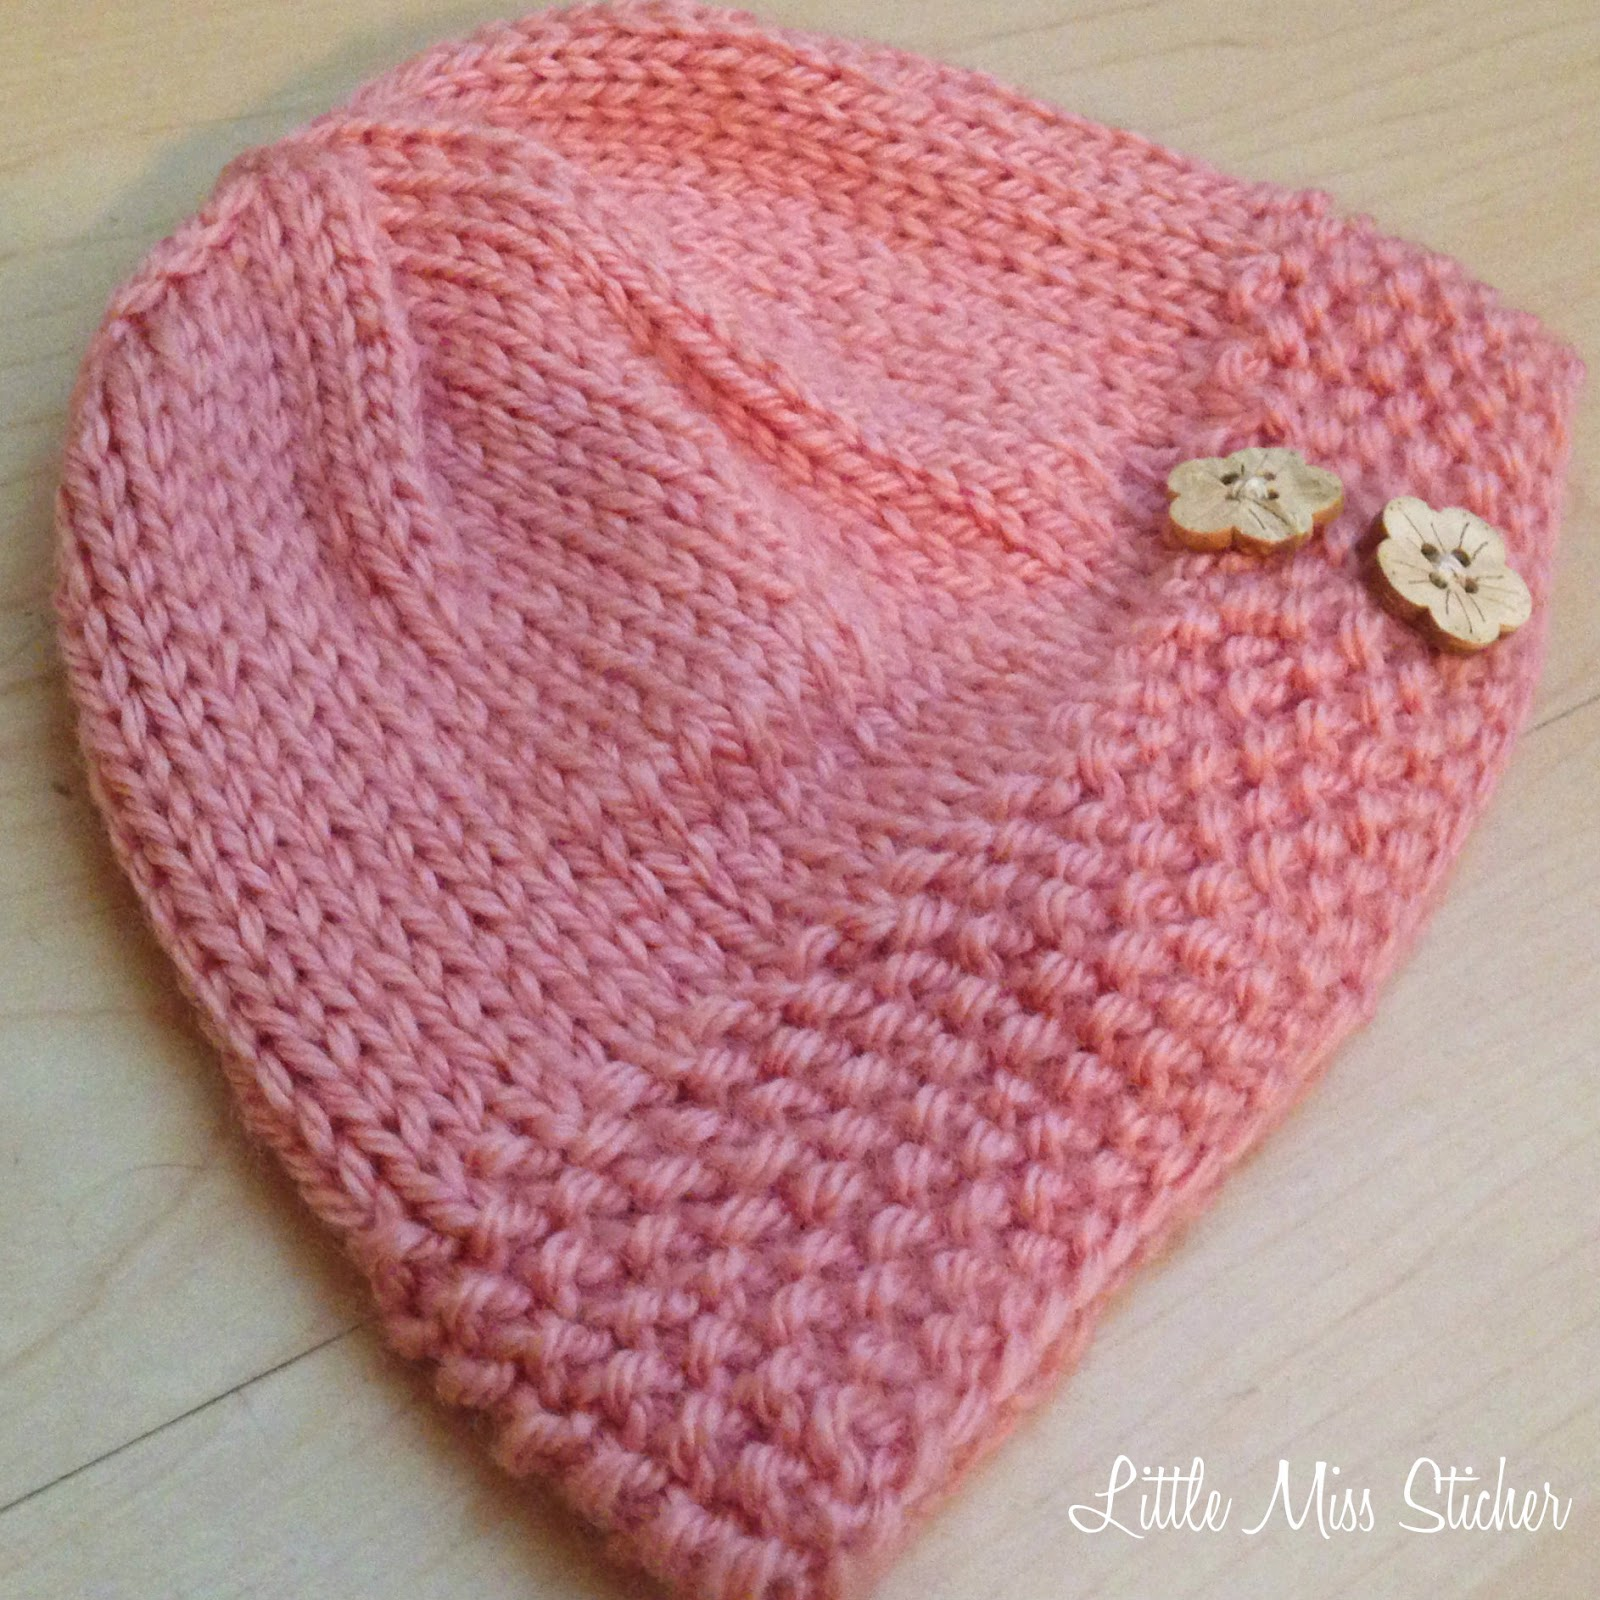 Huck s Baby Hat Knitting Pattern : Little Miss Stitcher: Bitty Beanie Free Knit Pattern